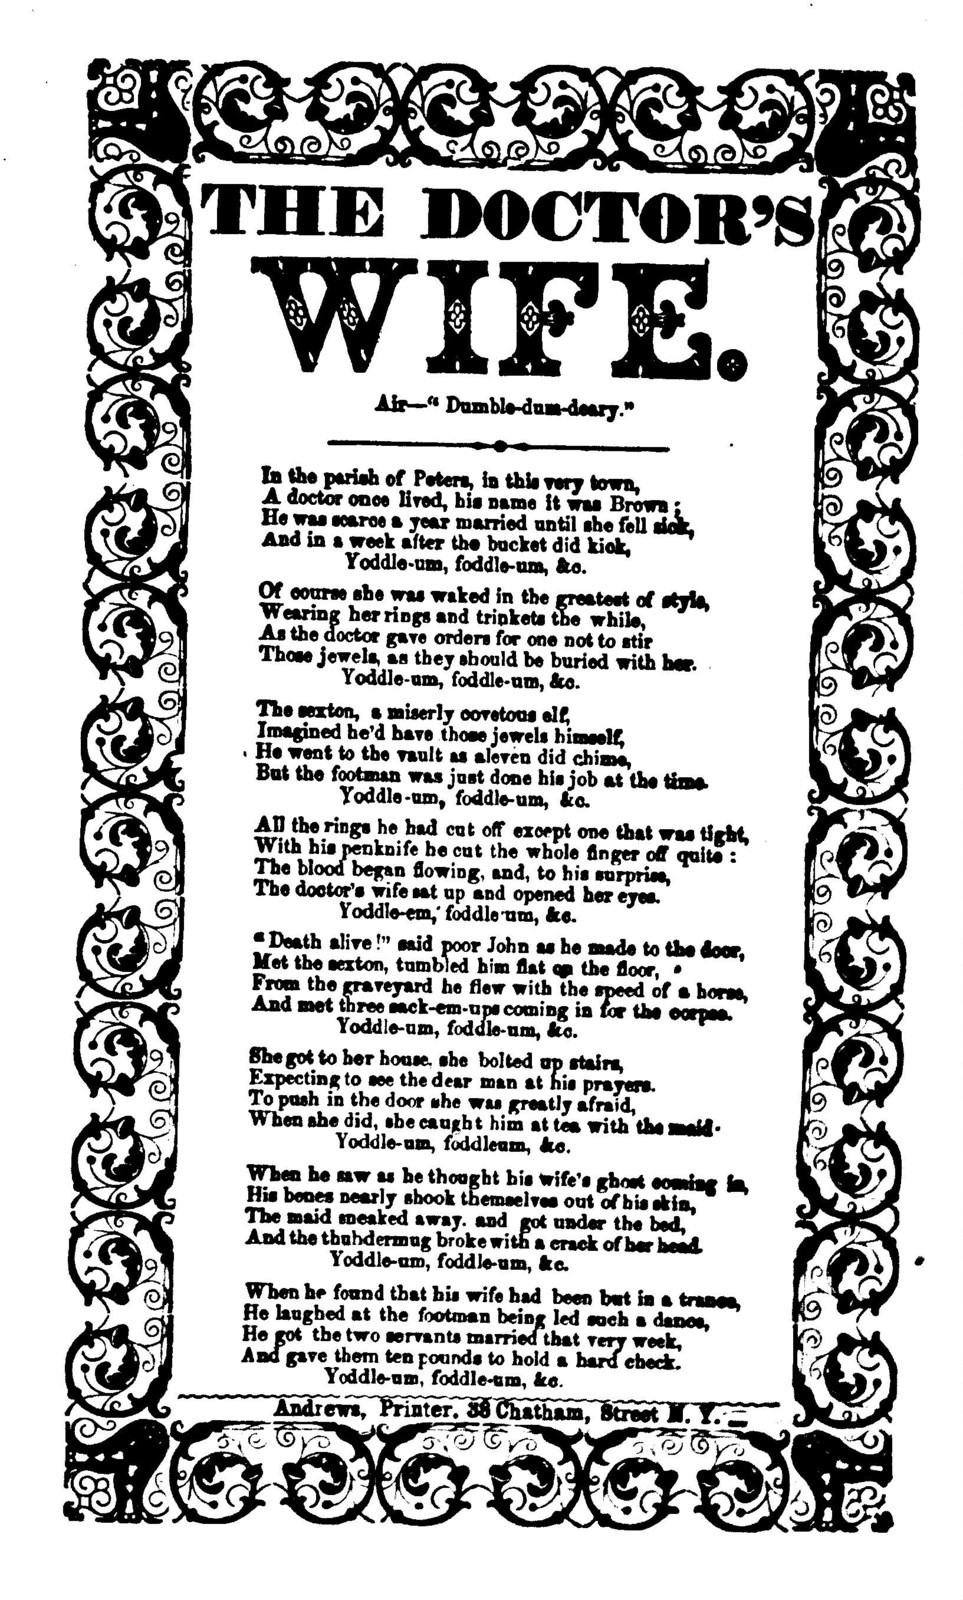 "The doctor's wife. Air--""Dumble-dum-deary."" Andrews, Printer, 38 Chatham Street N. Y"